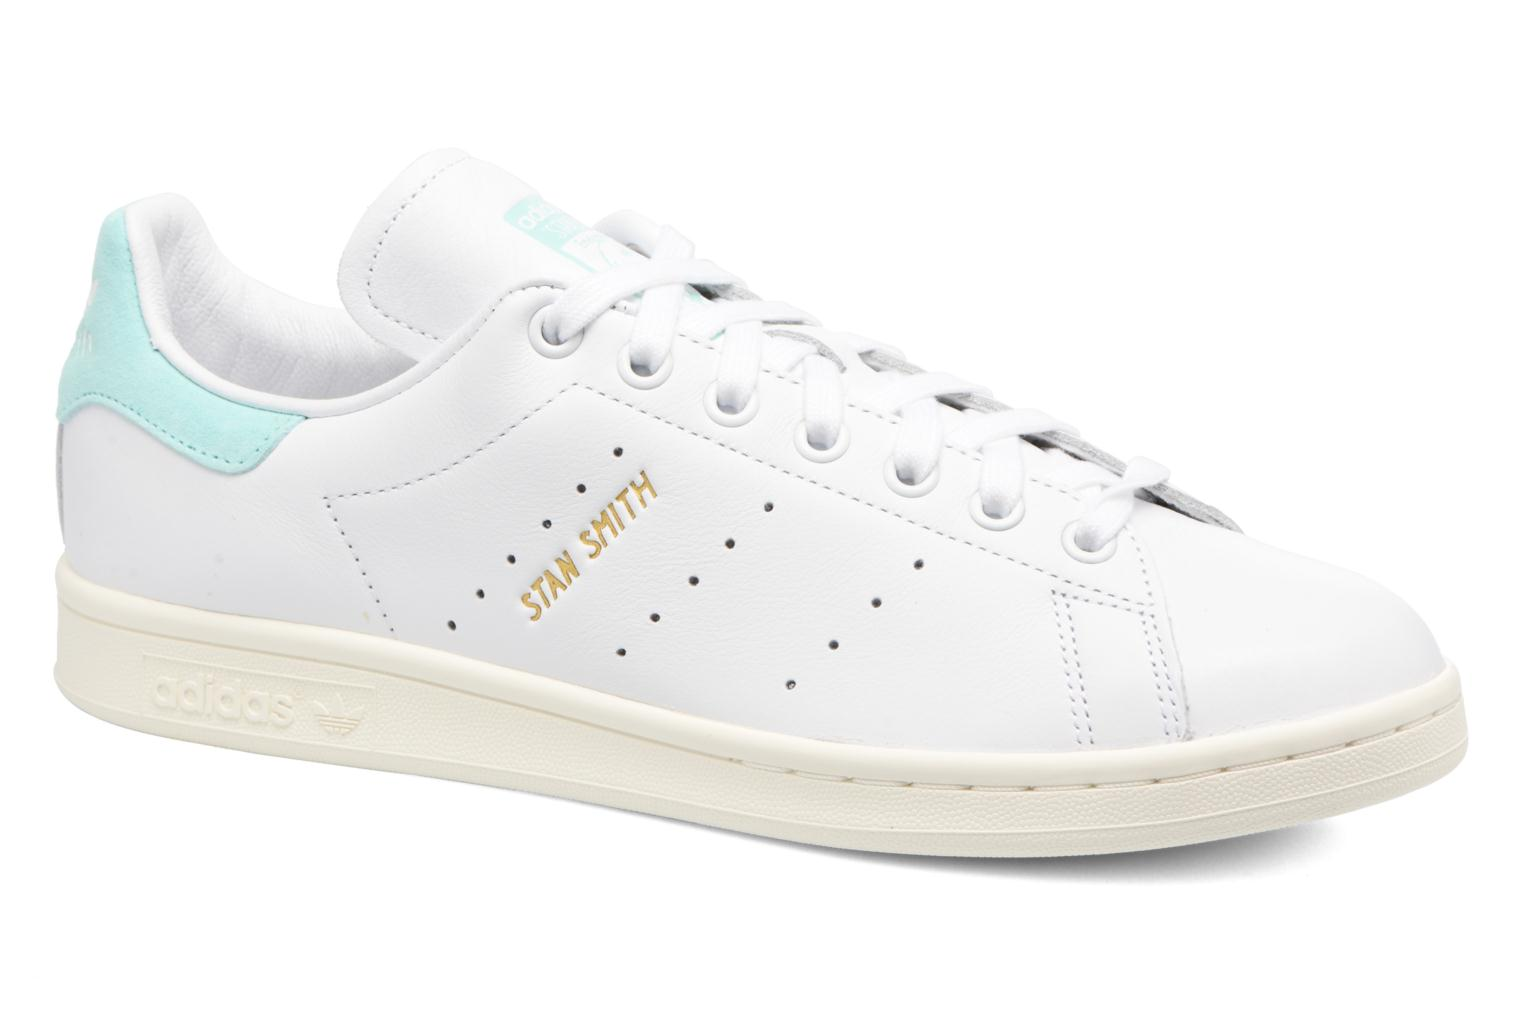 Stan Smith Ftwbla/Ftwbla/Aquene